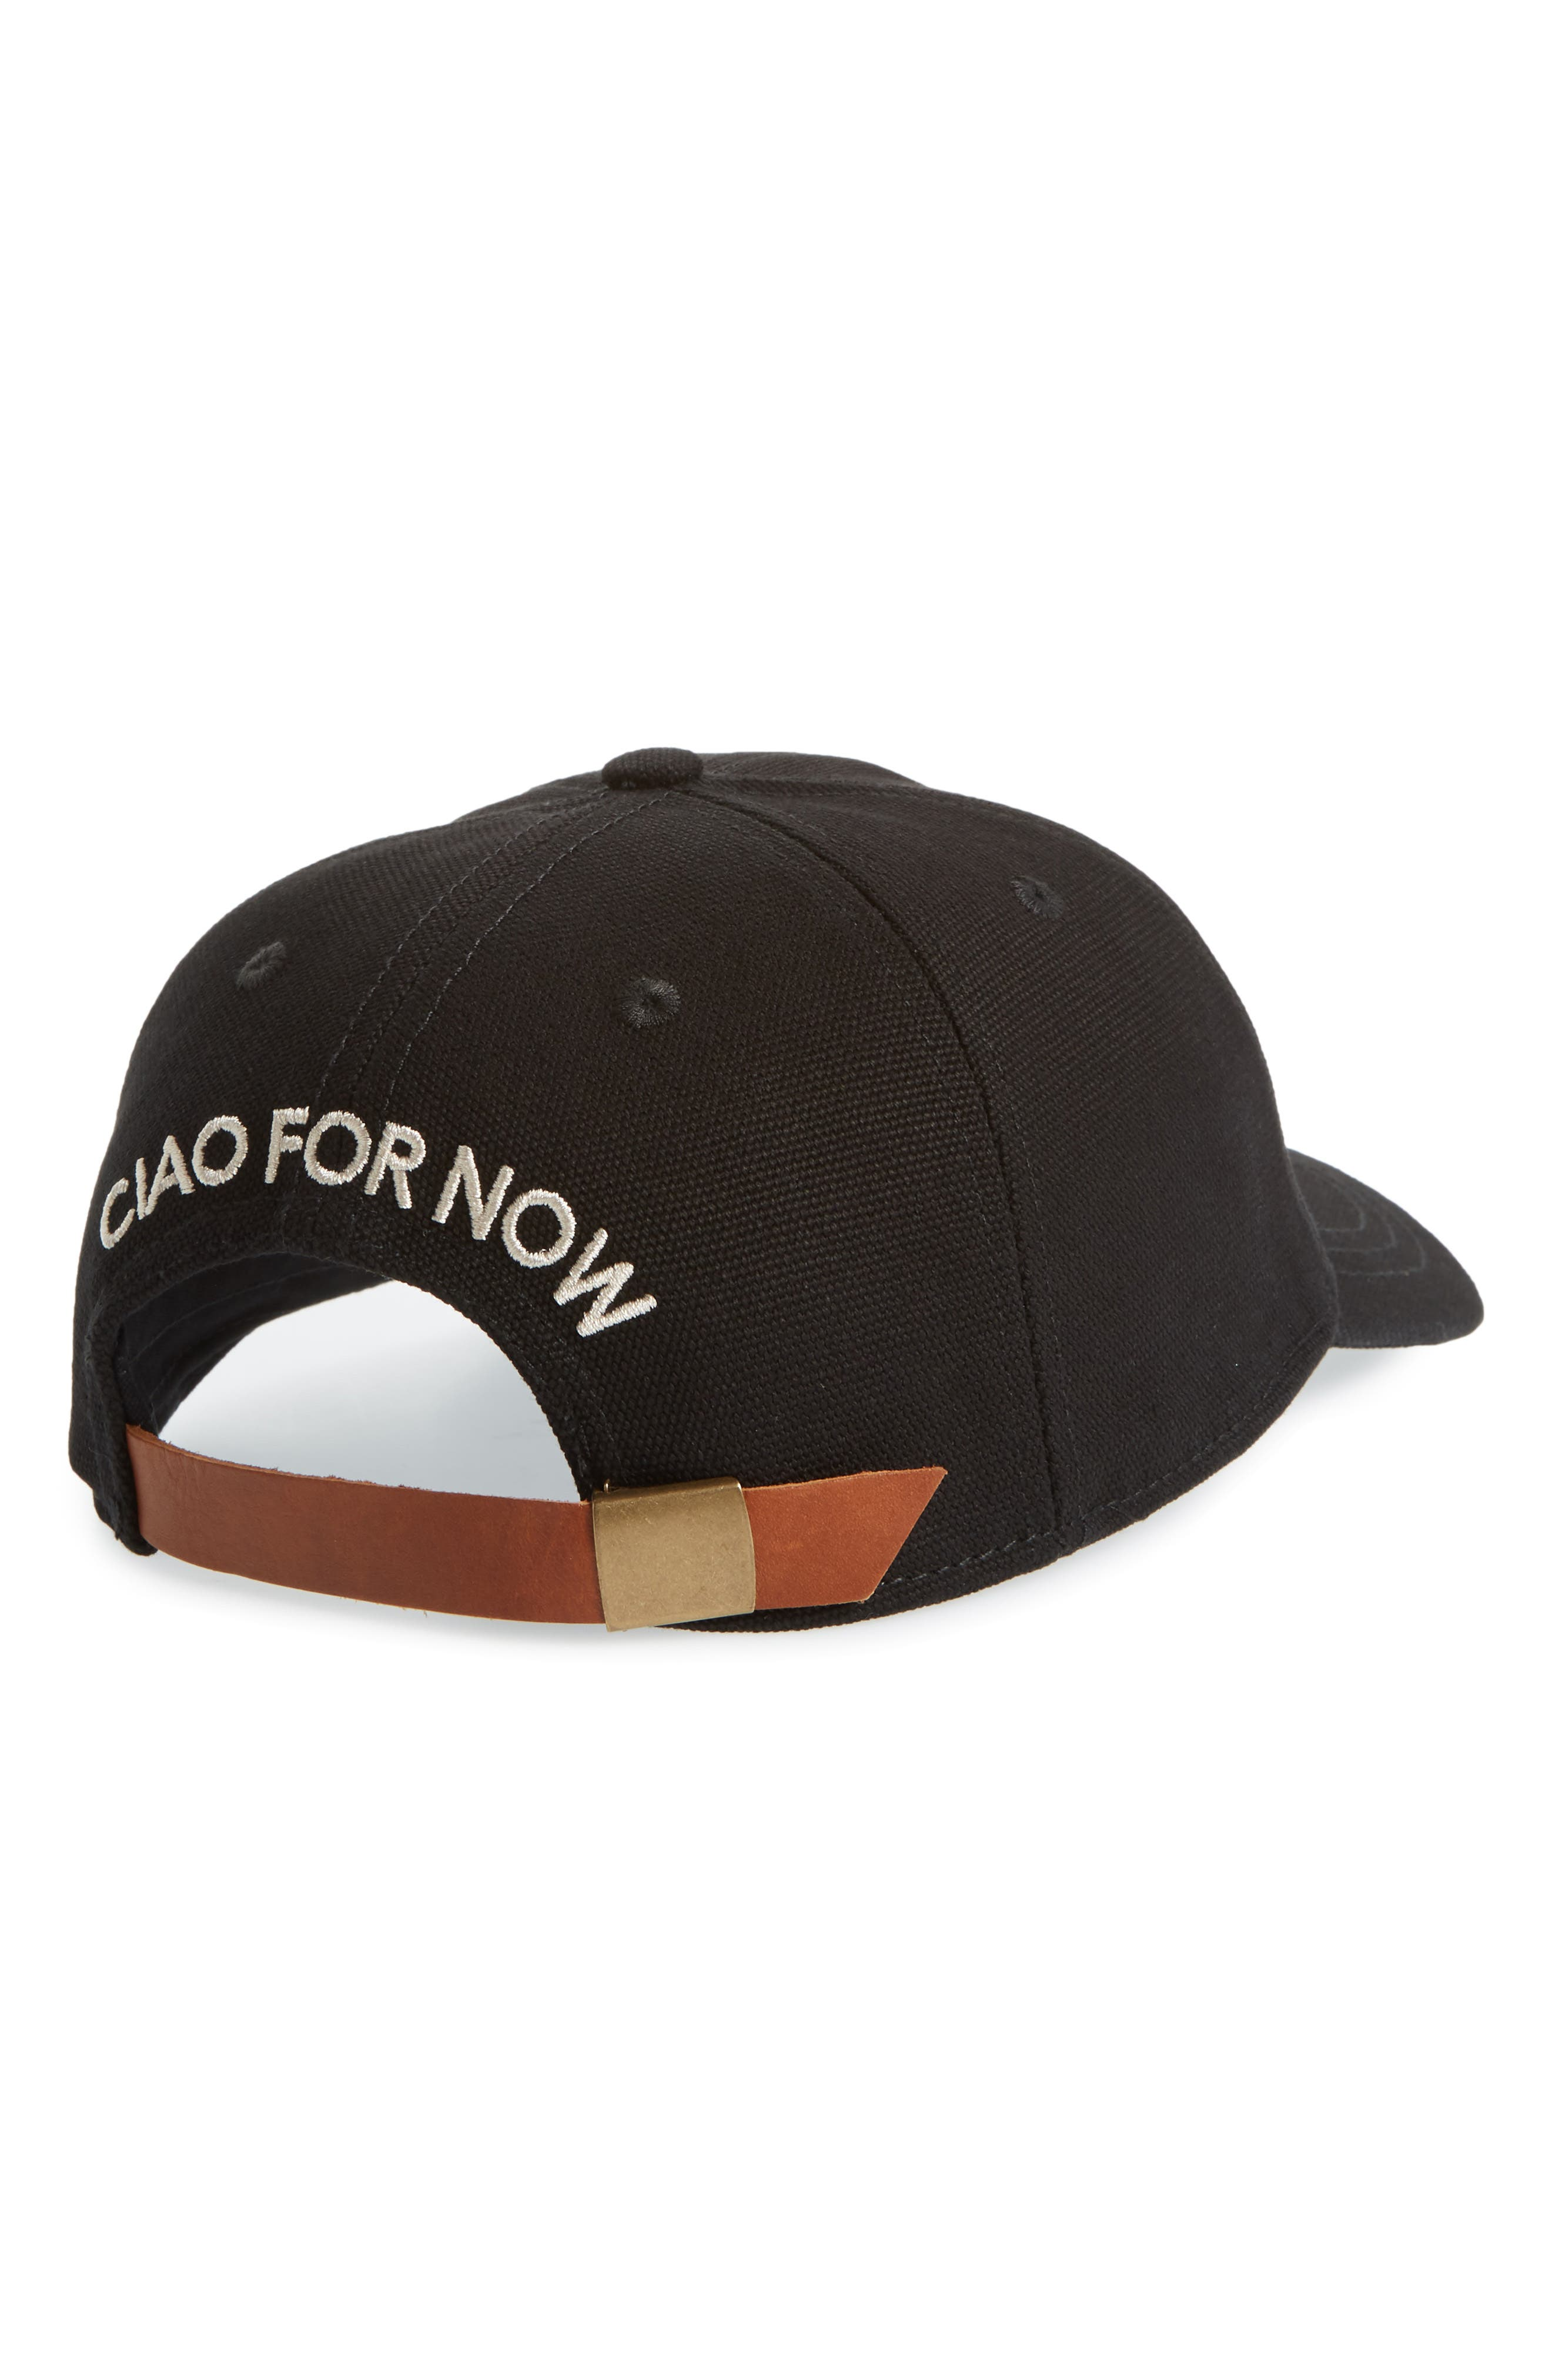 Embroidered Ciao for Now Canvas Baseball Cap,                             Alternate thumbnail 2, color,                             001